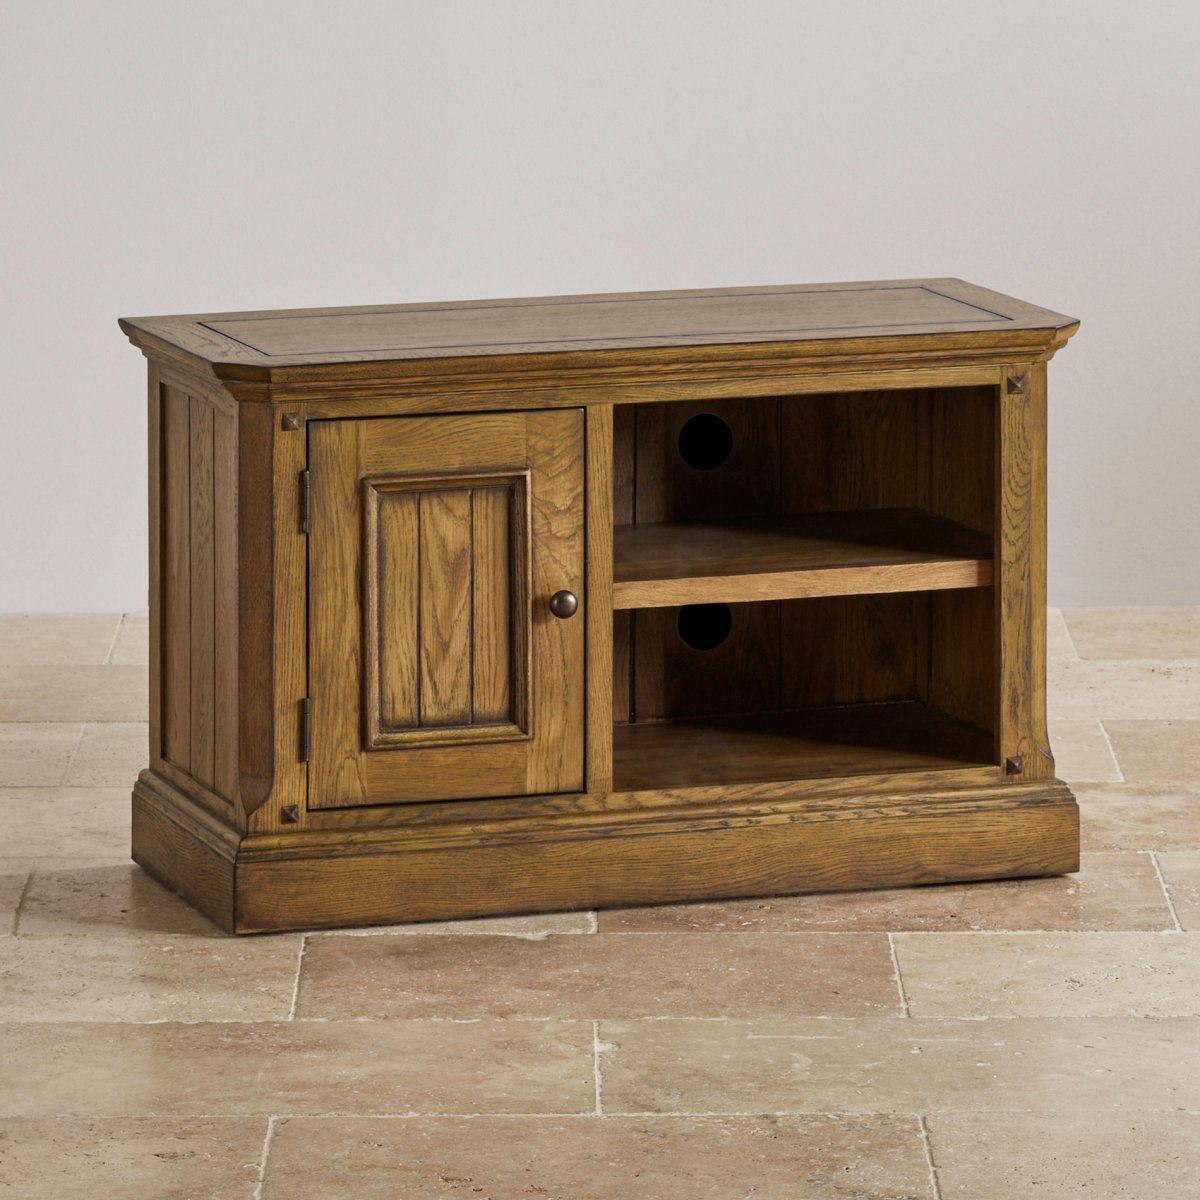 Manor house small tv unit in solid oak oak furniture land for Furniture land